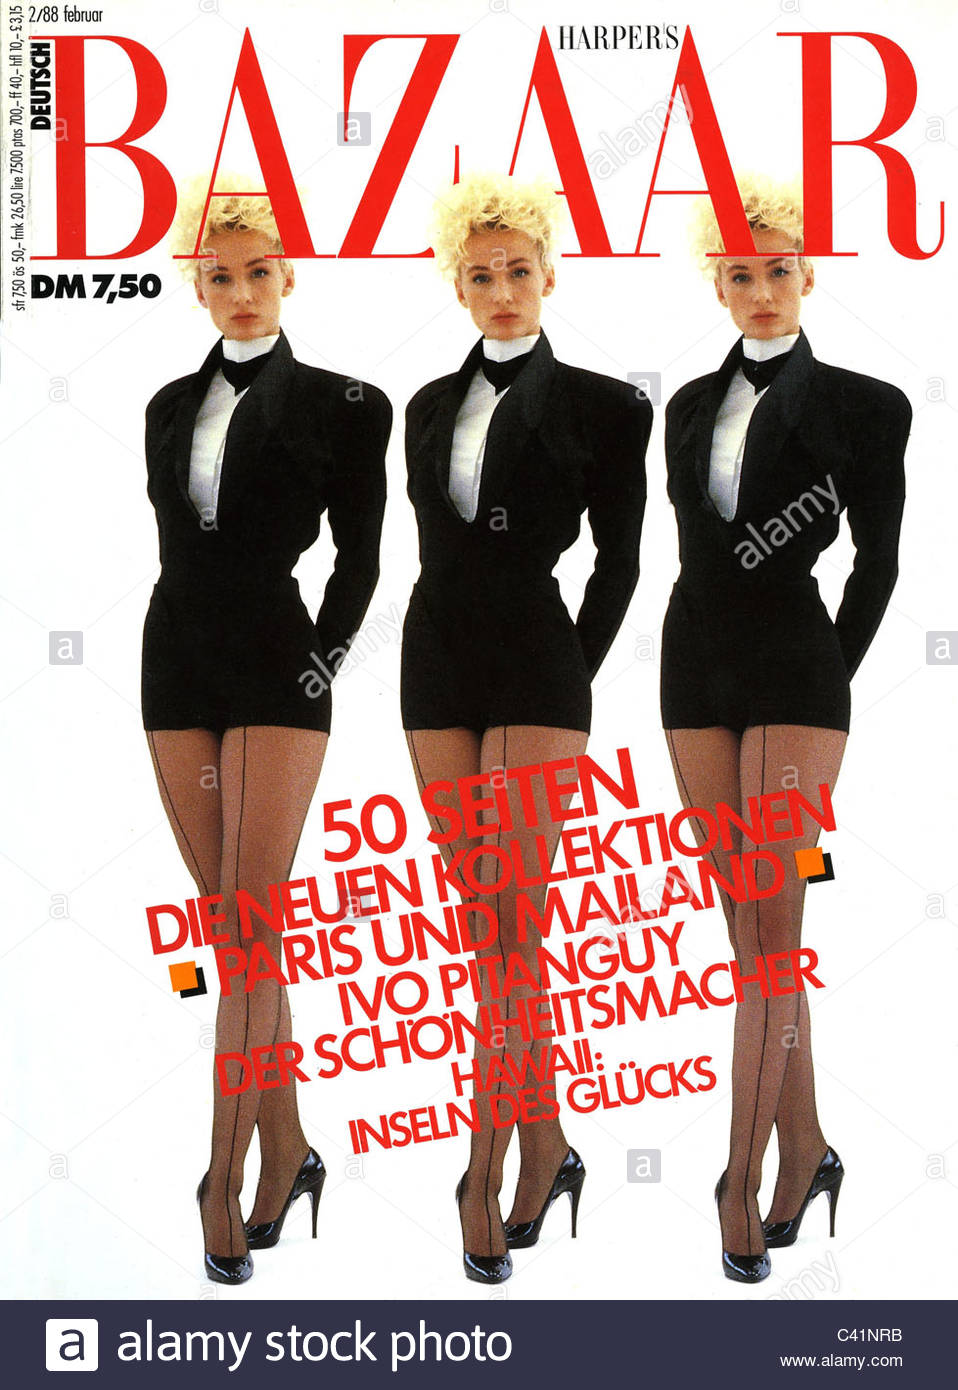 magazine, newspaper, 'Harper's Bazaar', title: 3 Models, edition, February, Munich, 1988, glossy, mag, - Stock Image